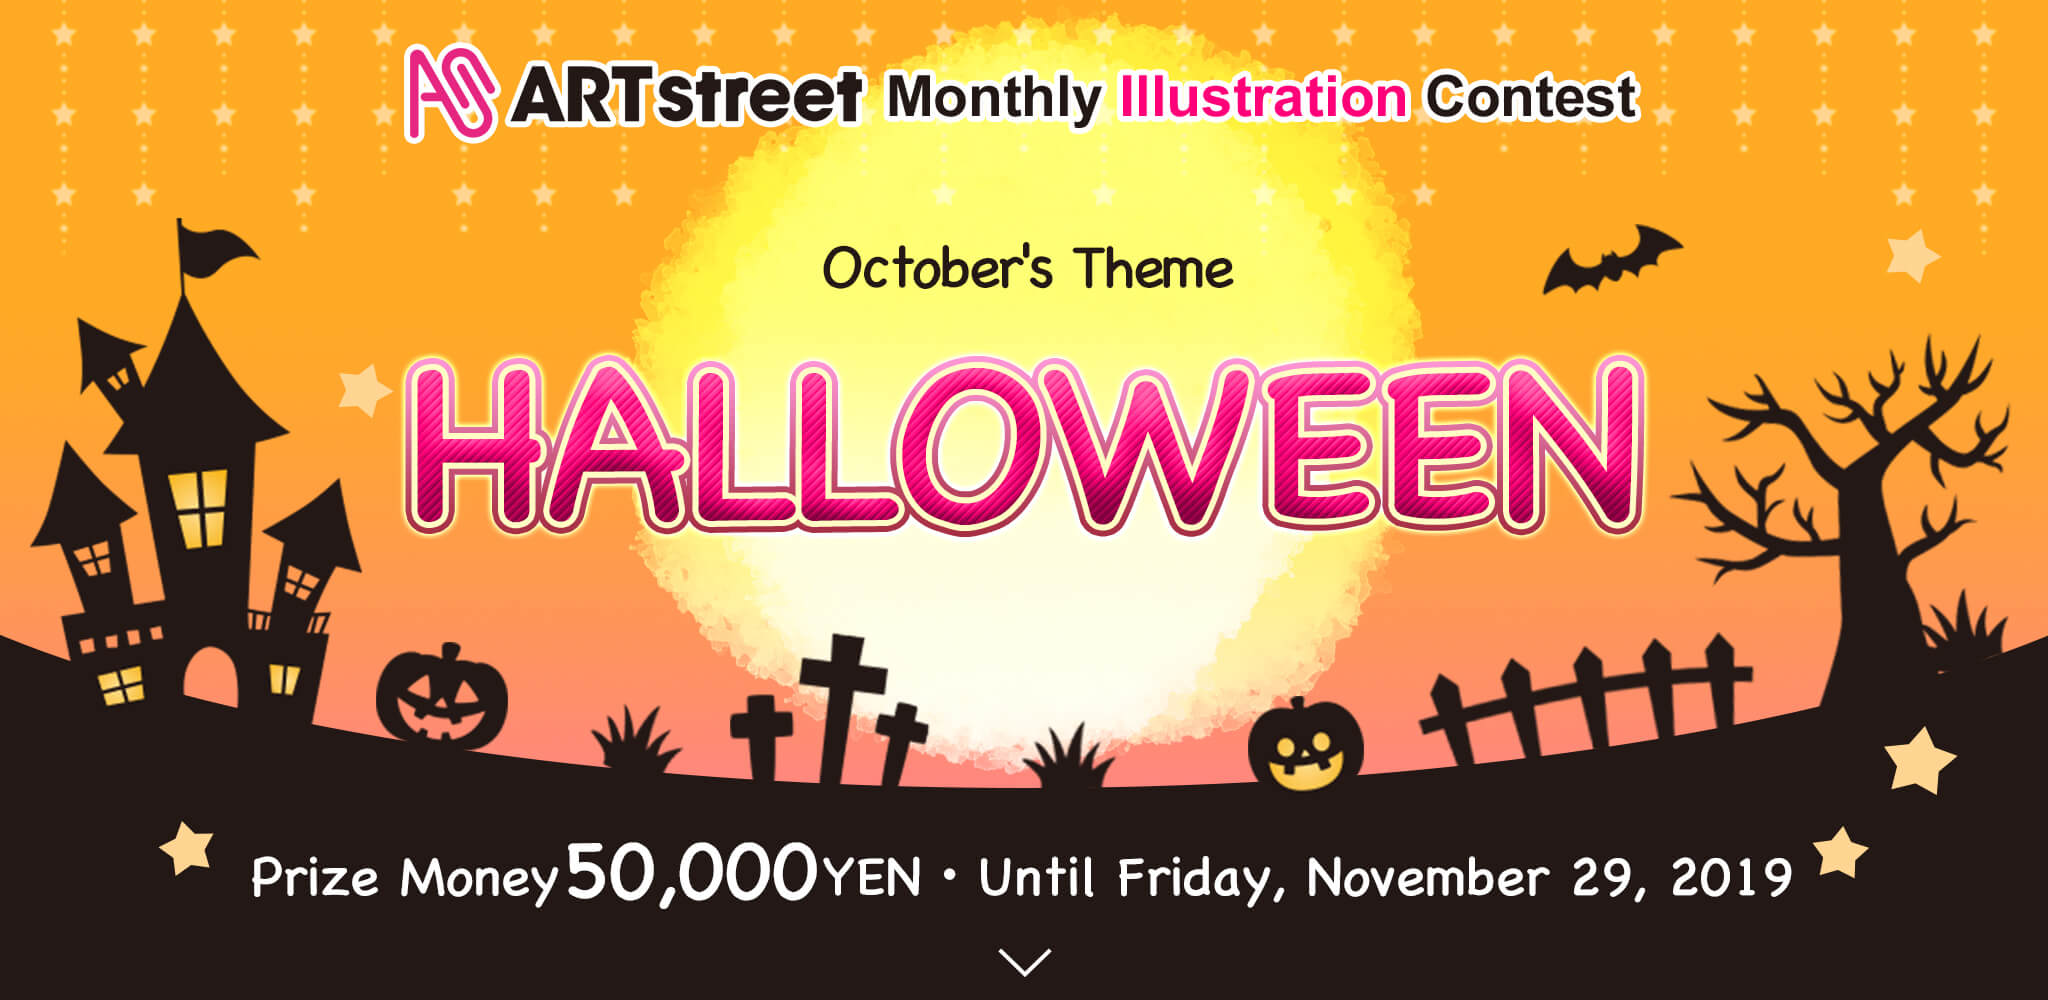 ART street Monthly Illustration Contest 201910 | Contest-ART Street by Medibang